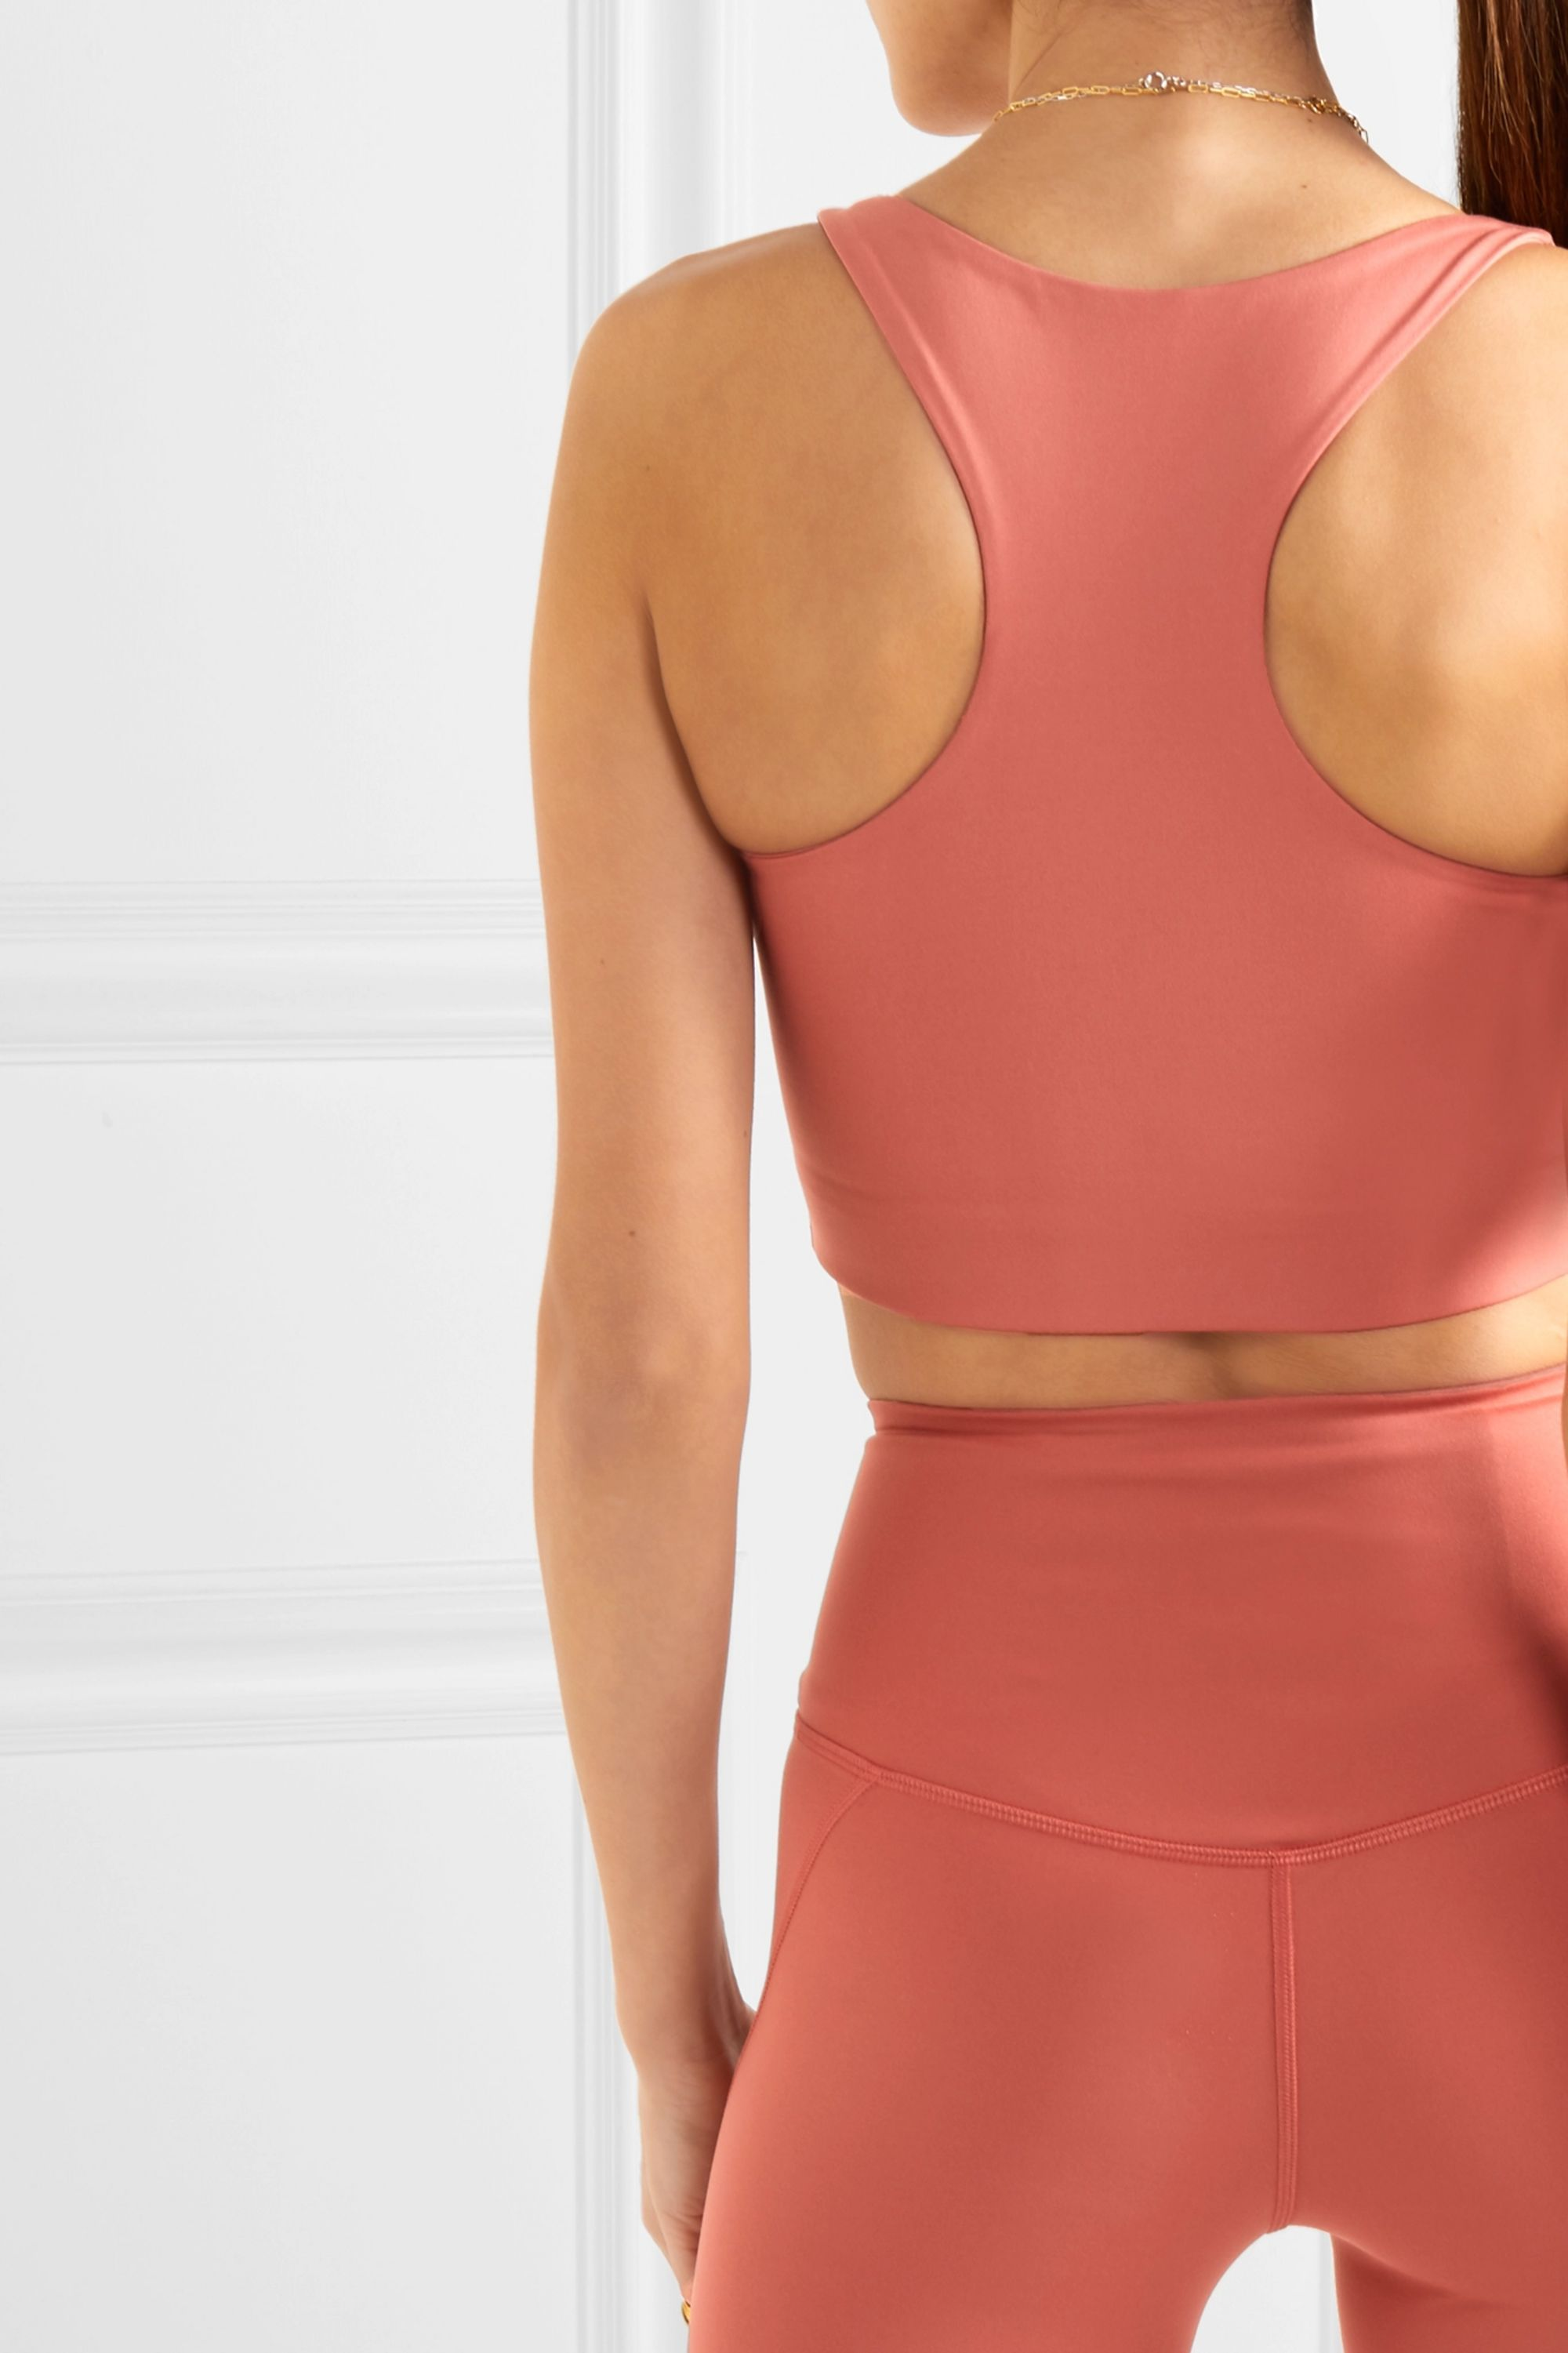 Girlfriend Collective Paloma Sport-BH aus Stretch-Material